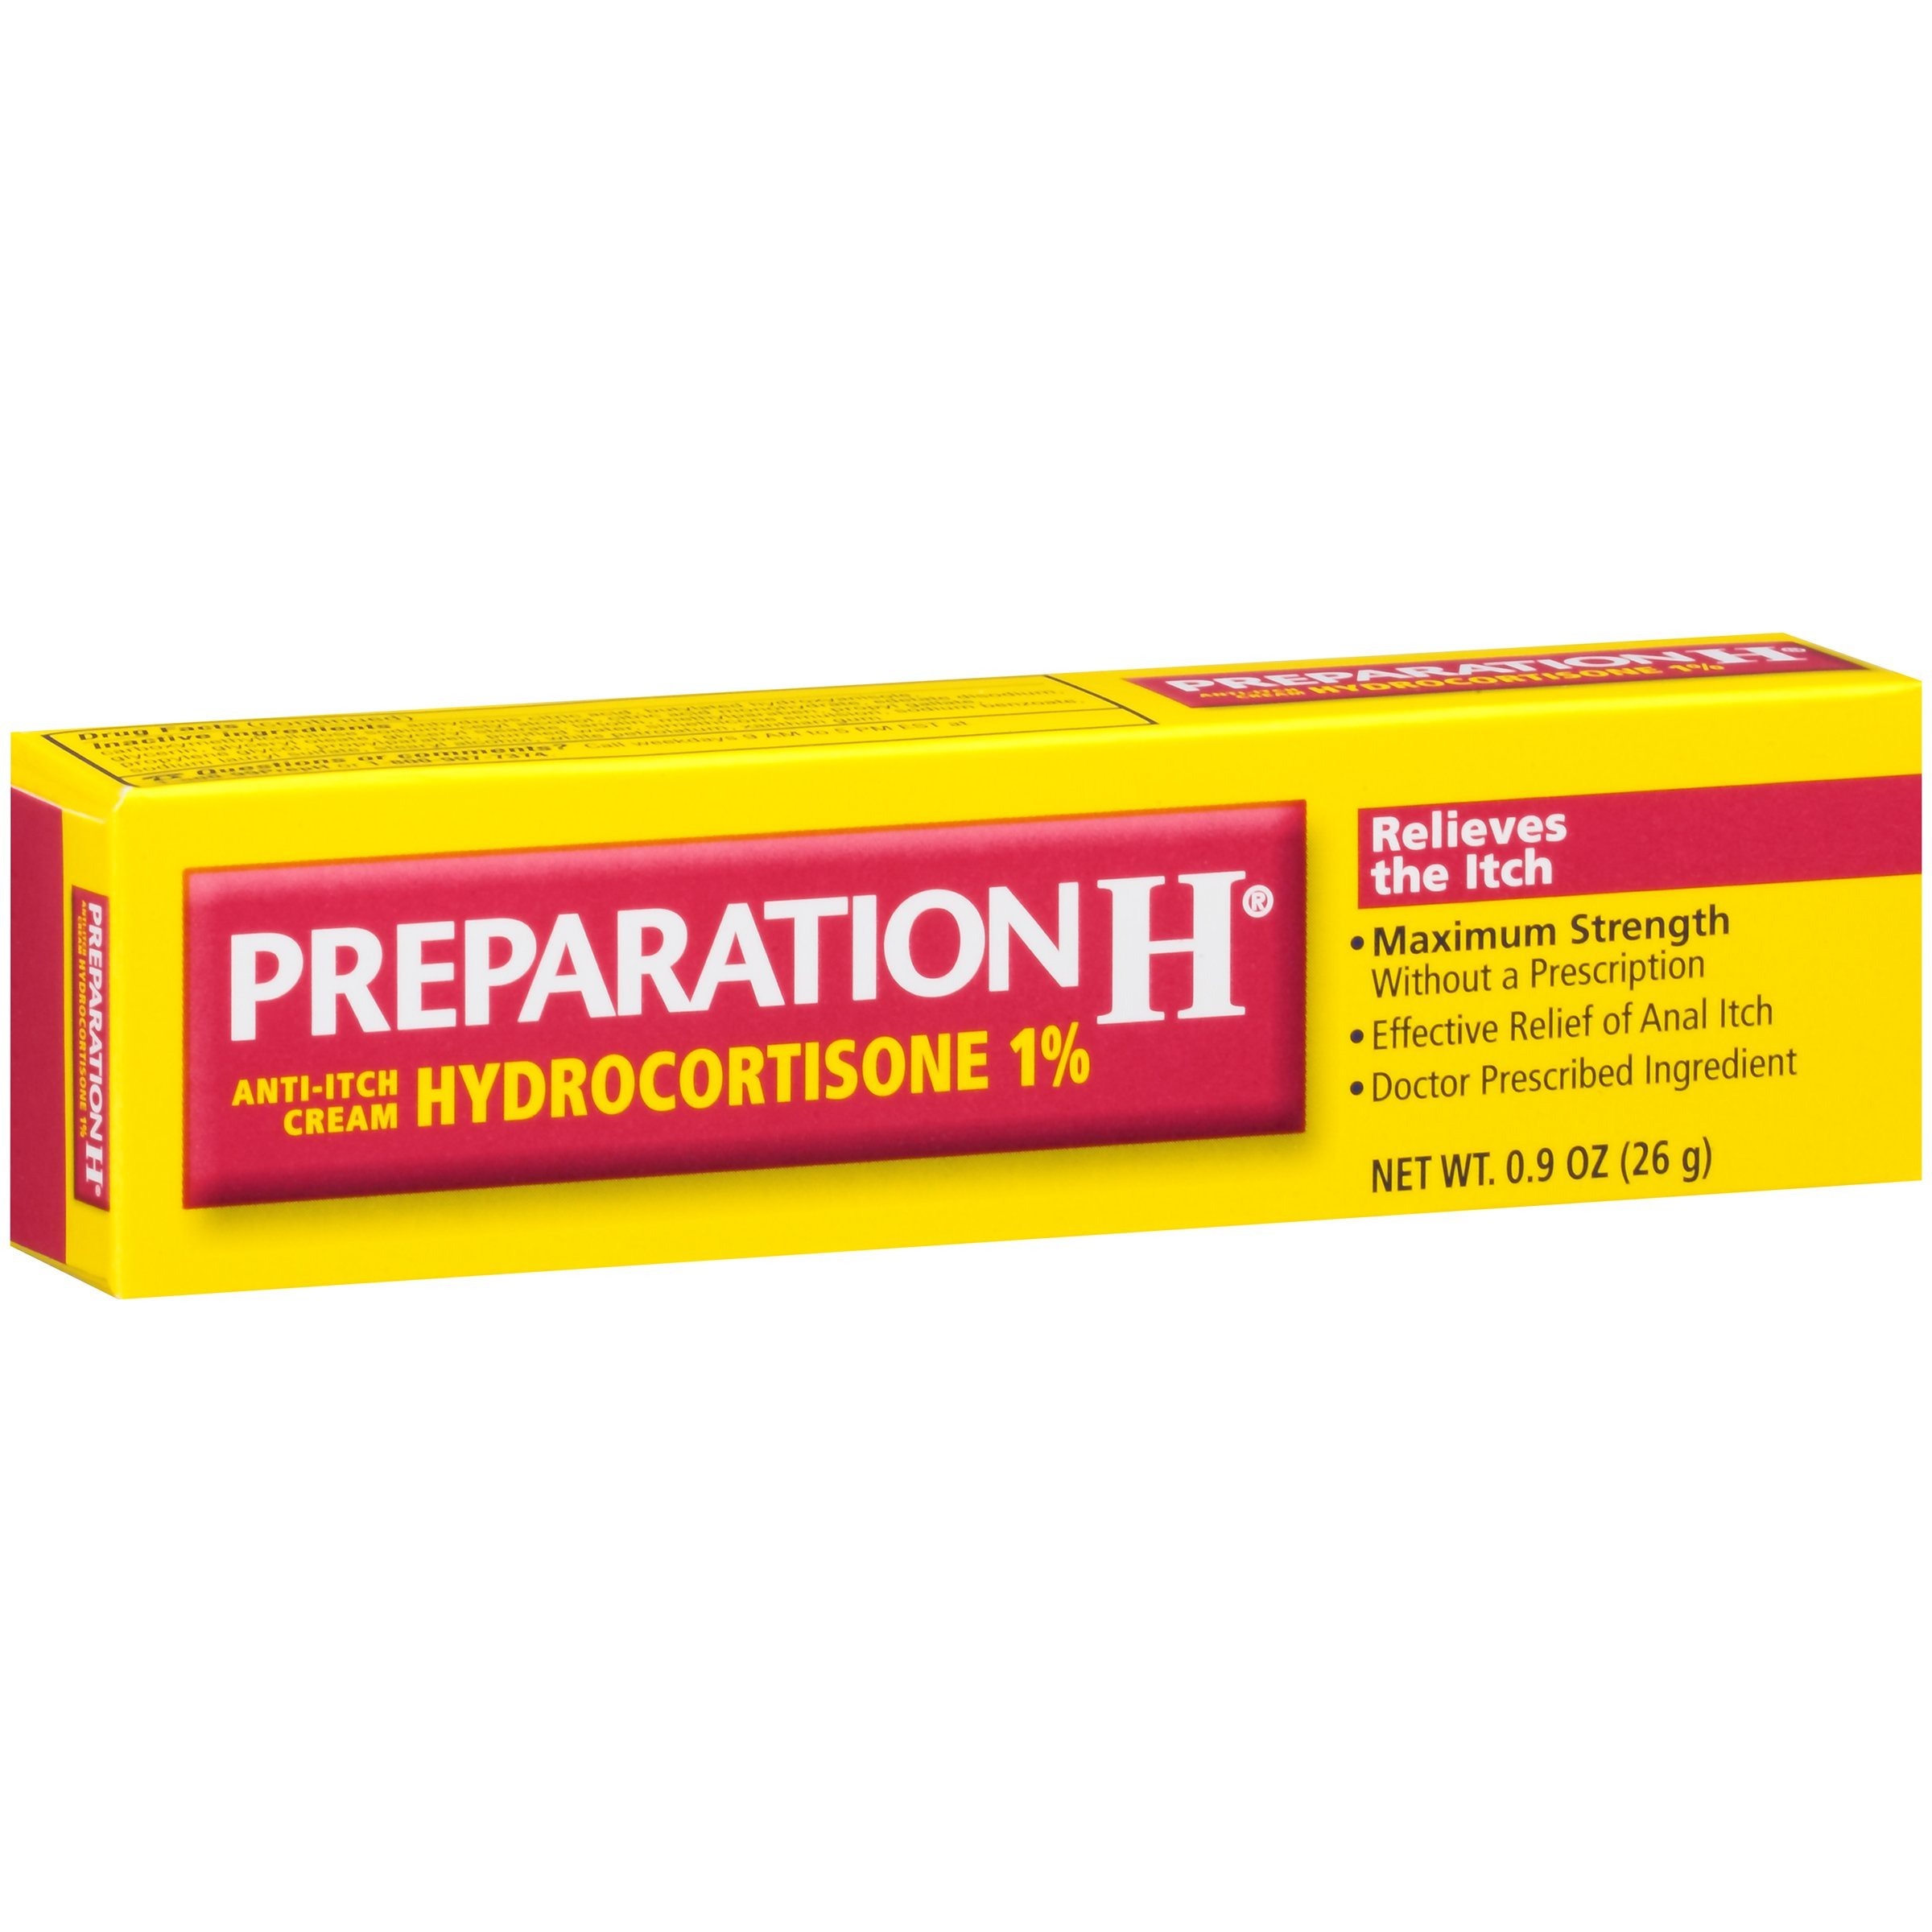 Preparation H Anti-Itch Cream With Hydrocortisone 1% (0.9 Ounce Tube, Pack of 3) by Preparation H